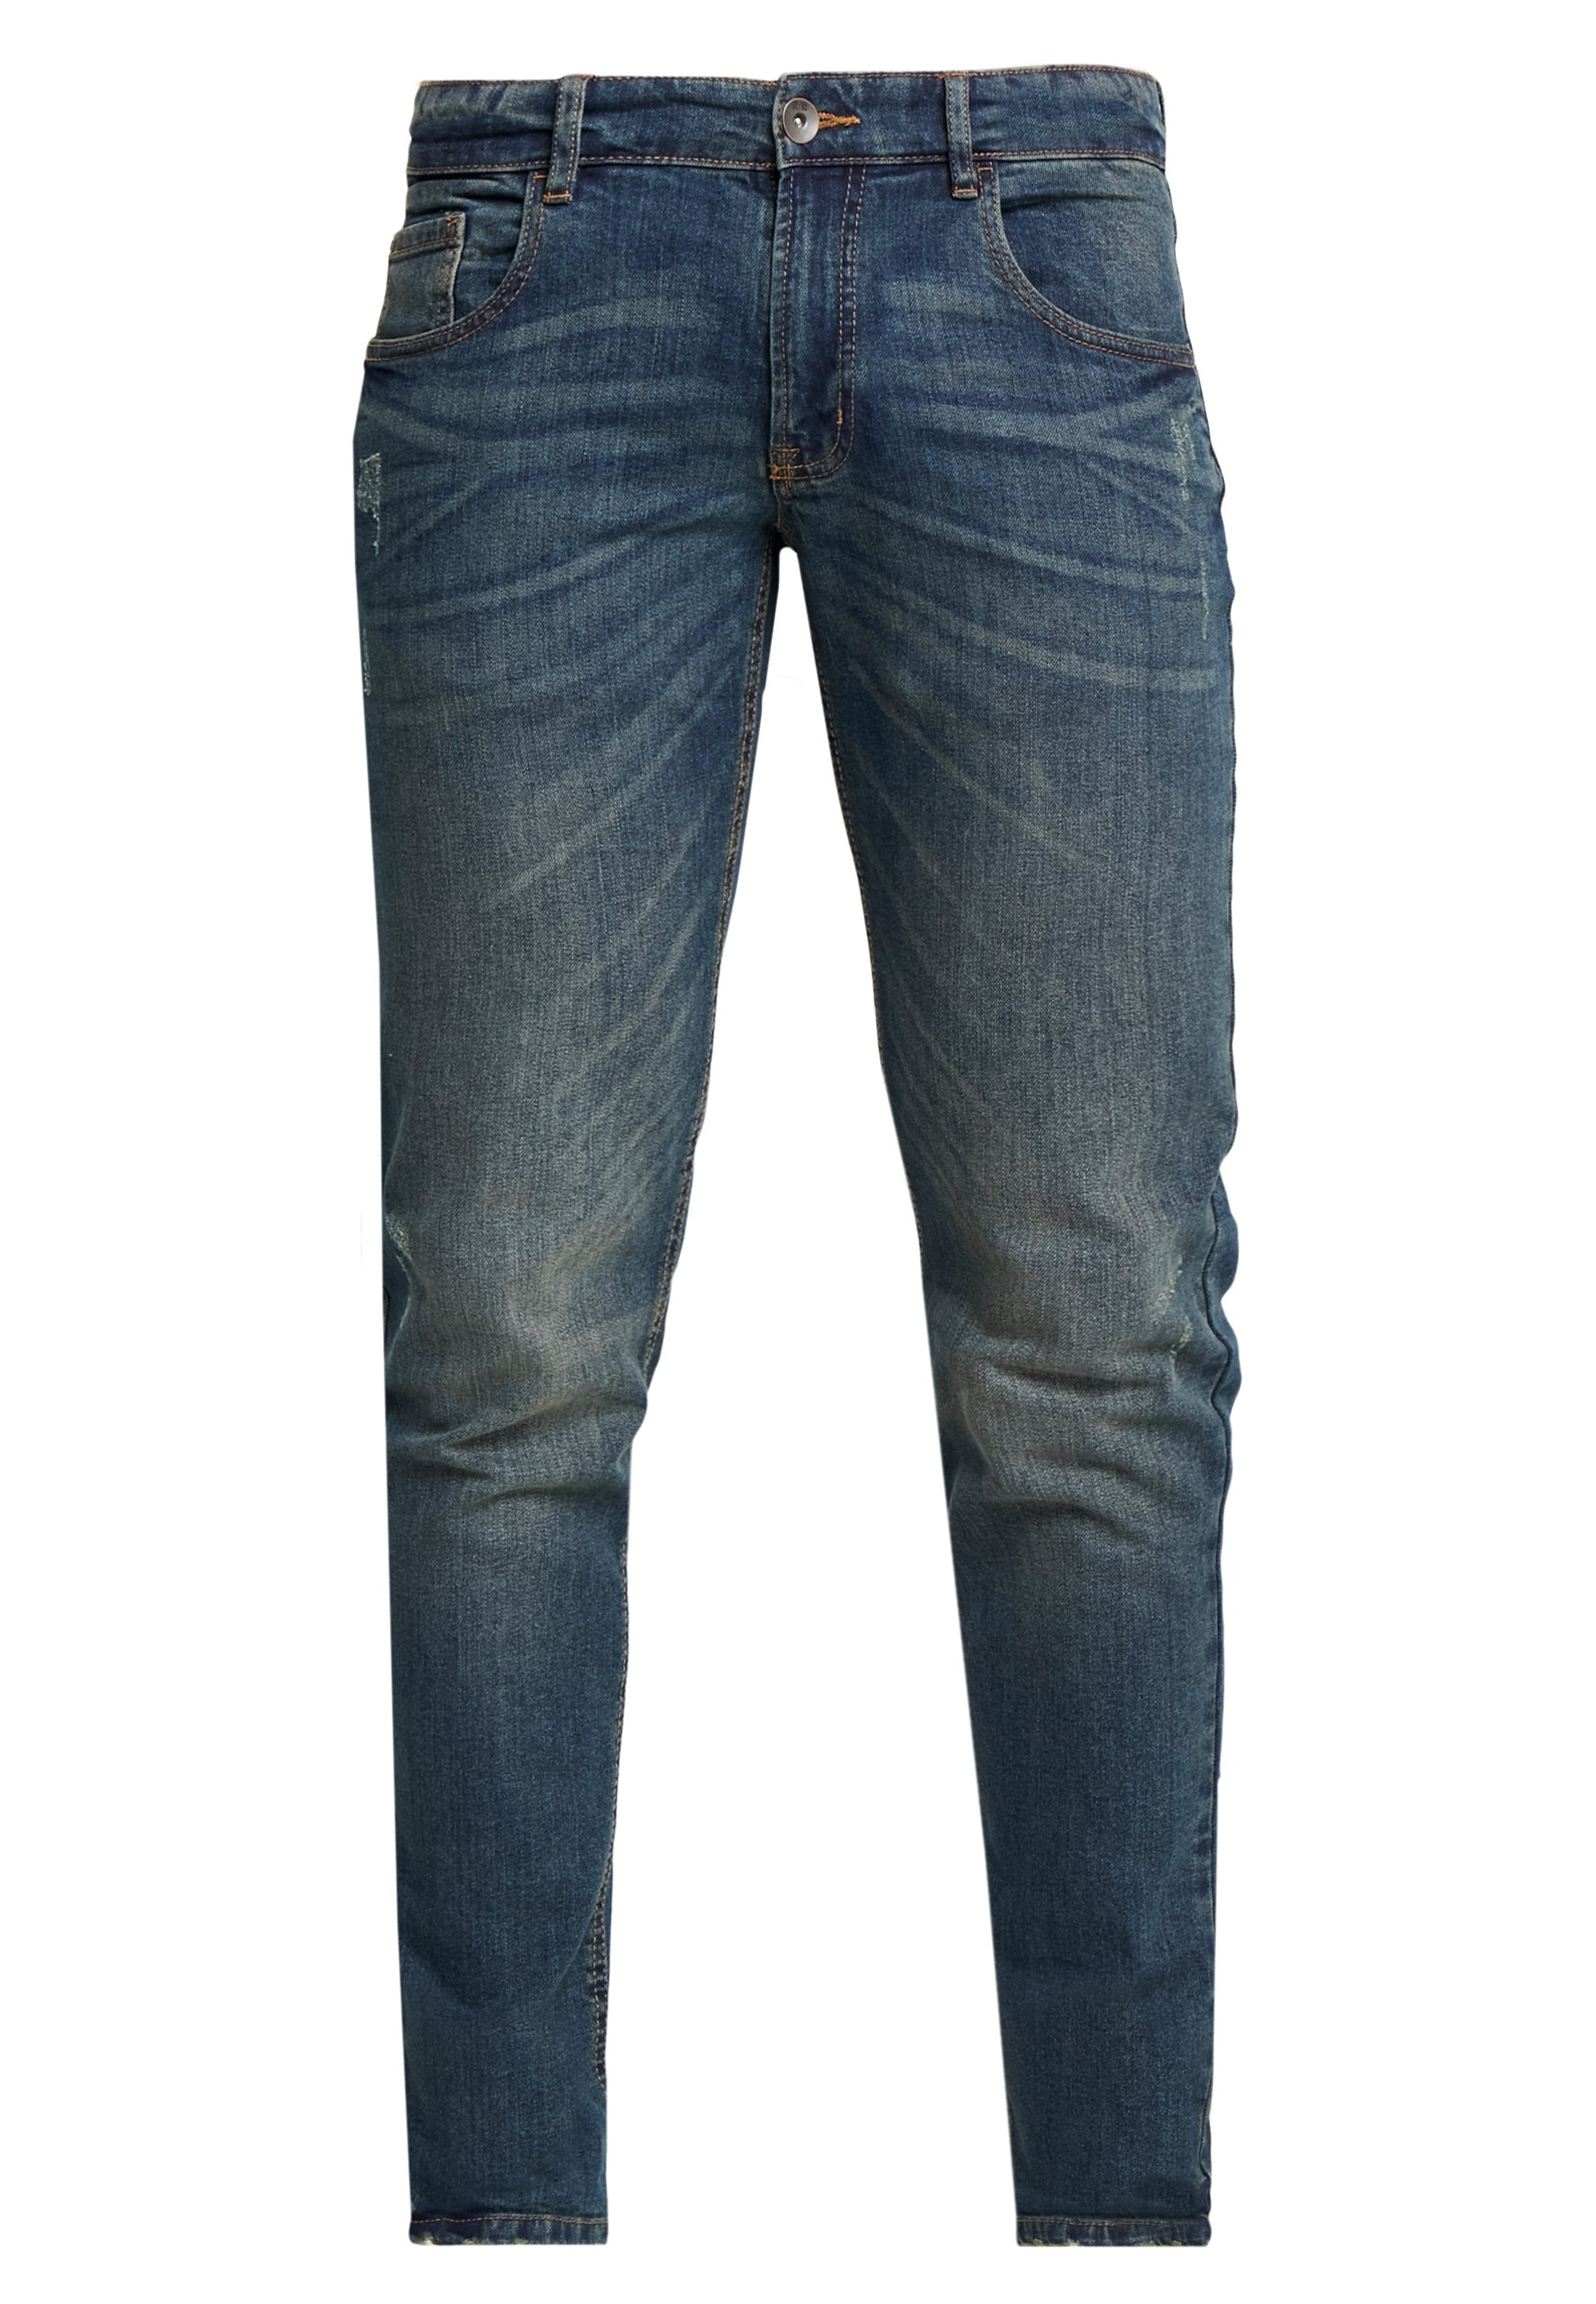 Redefined Rebel Rrcopenhagen - Jeans Slim Fit Eqyptian Blue